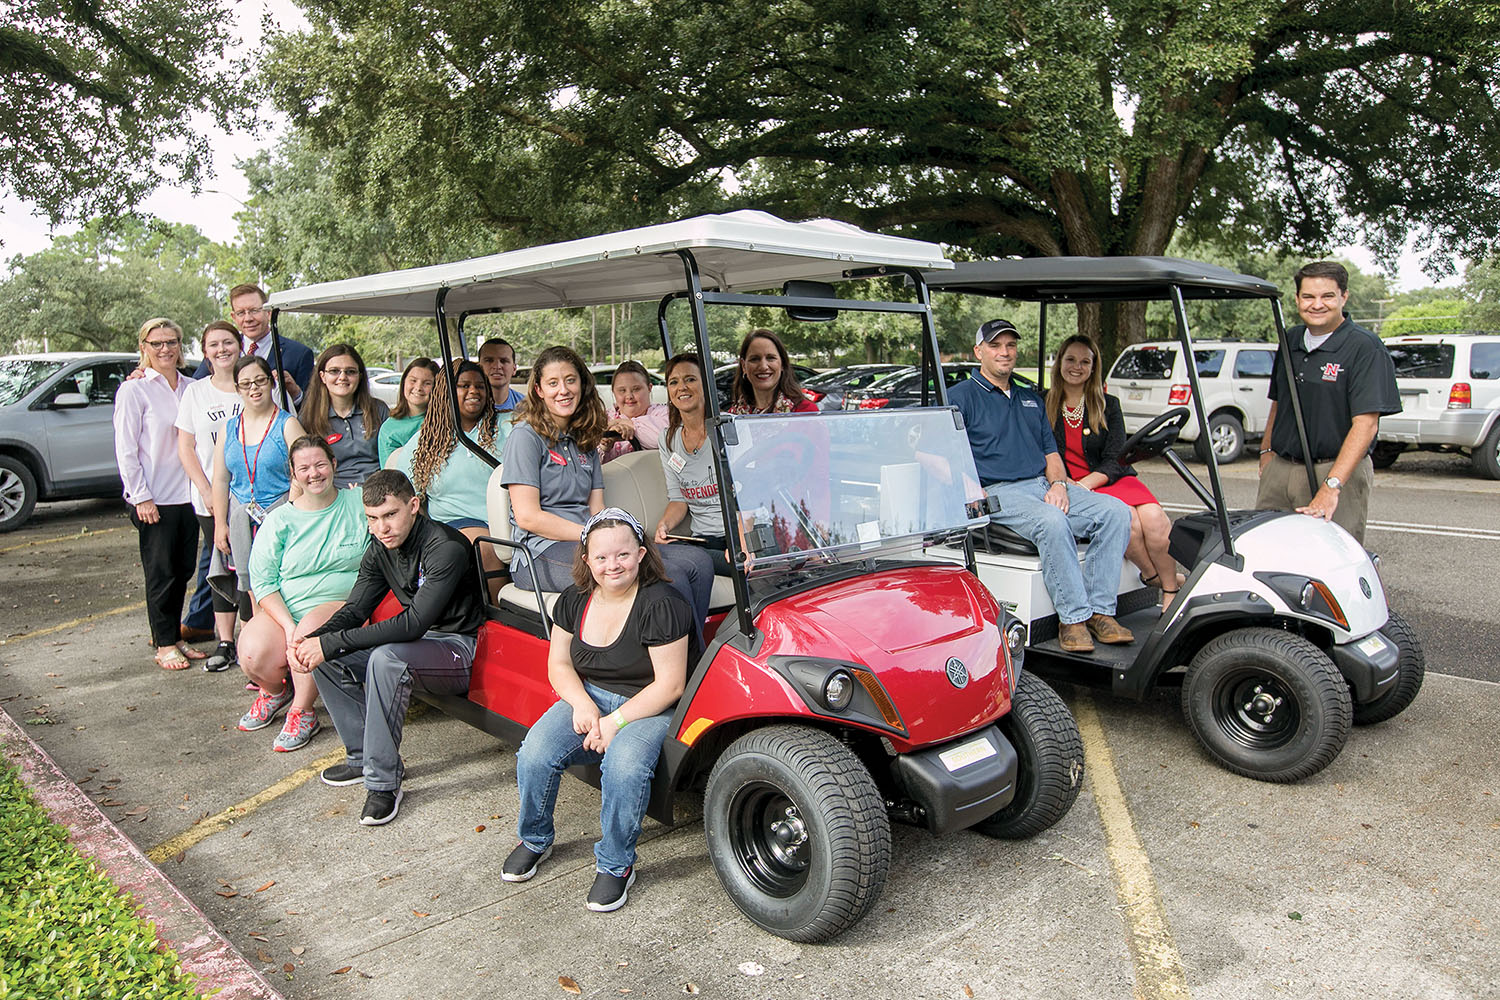 The golf carts will give students in the Bridge to Independence Program faster and easier transportation throughout the Nicholls State campus.